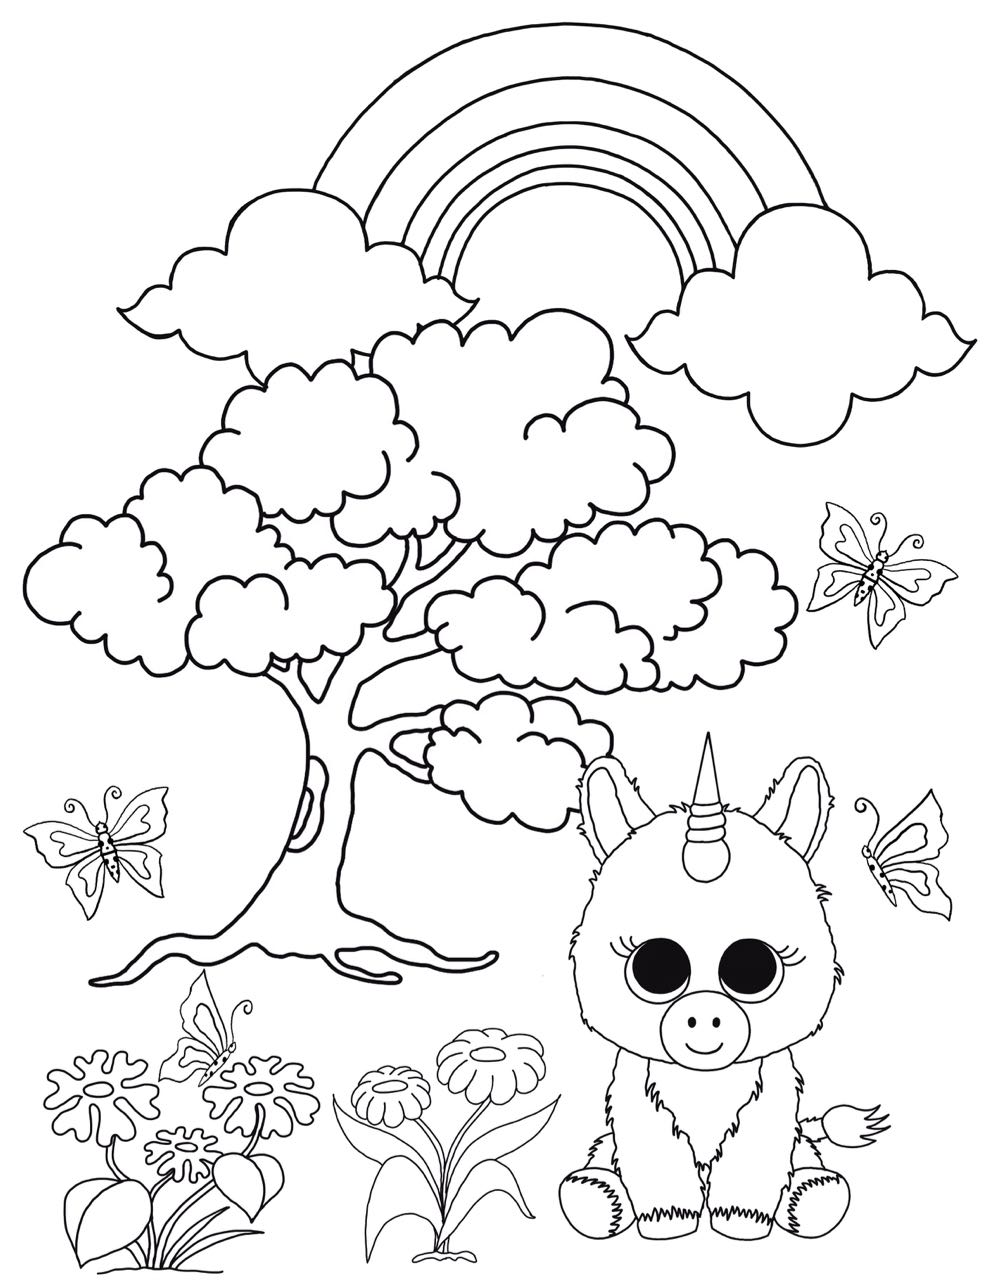 989x1280 Beanie Boo Coloring Pages Unicorn In The Enchanted Forest Free